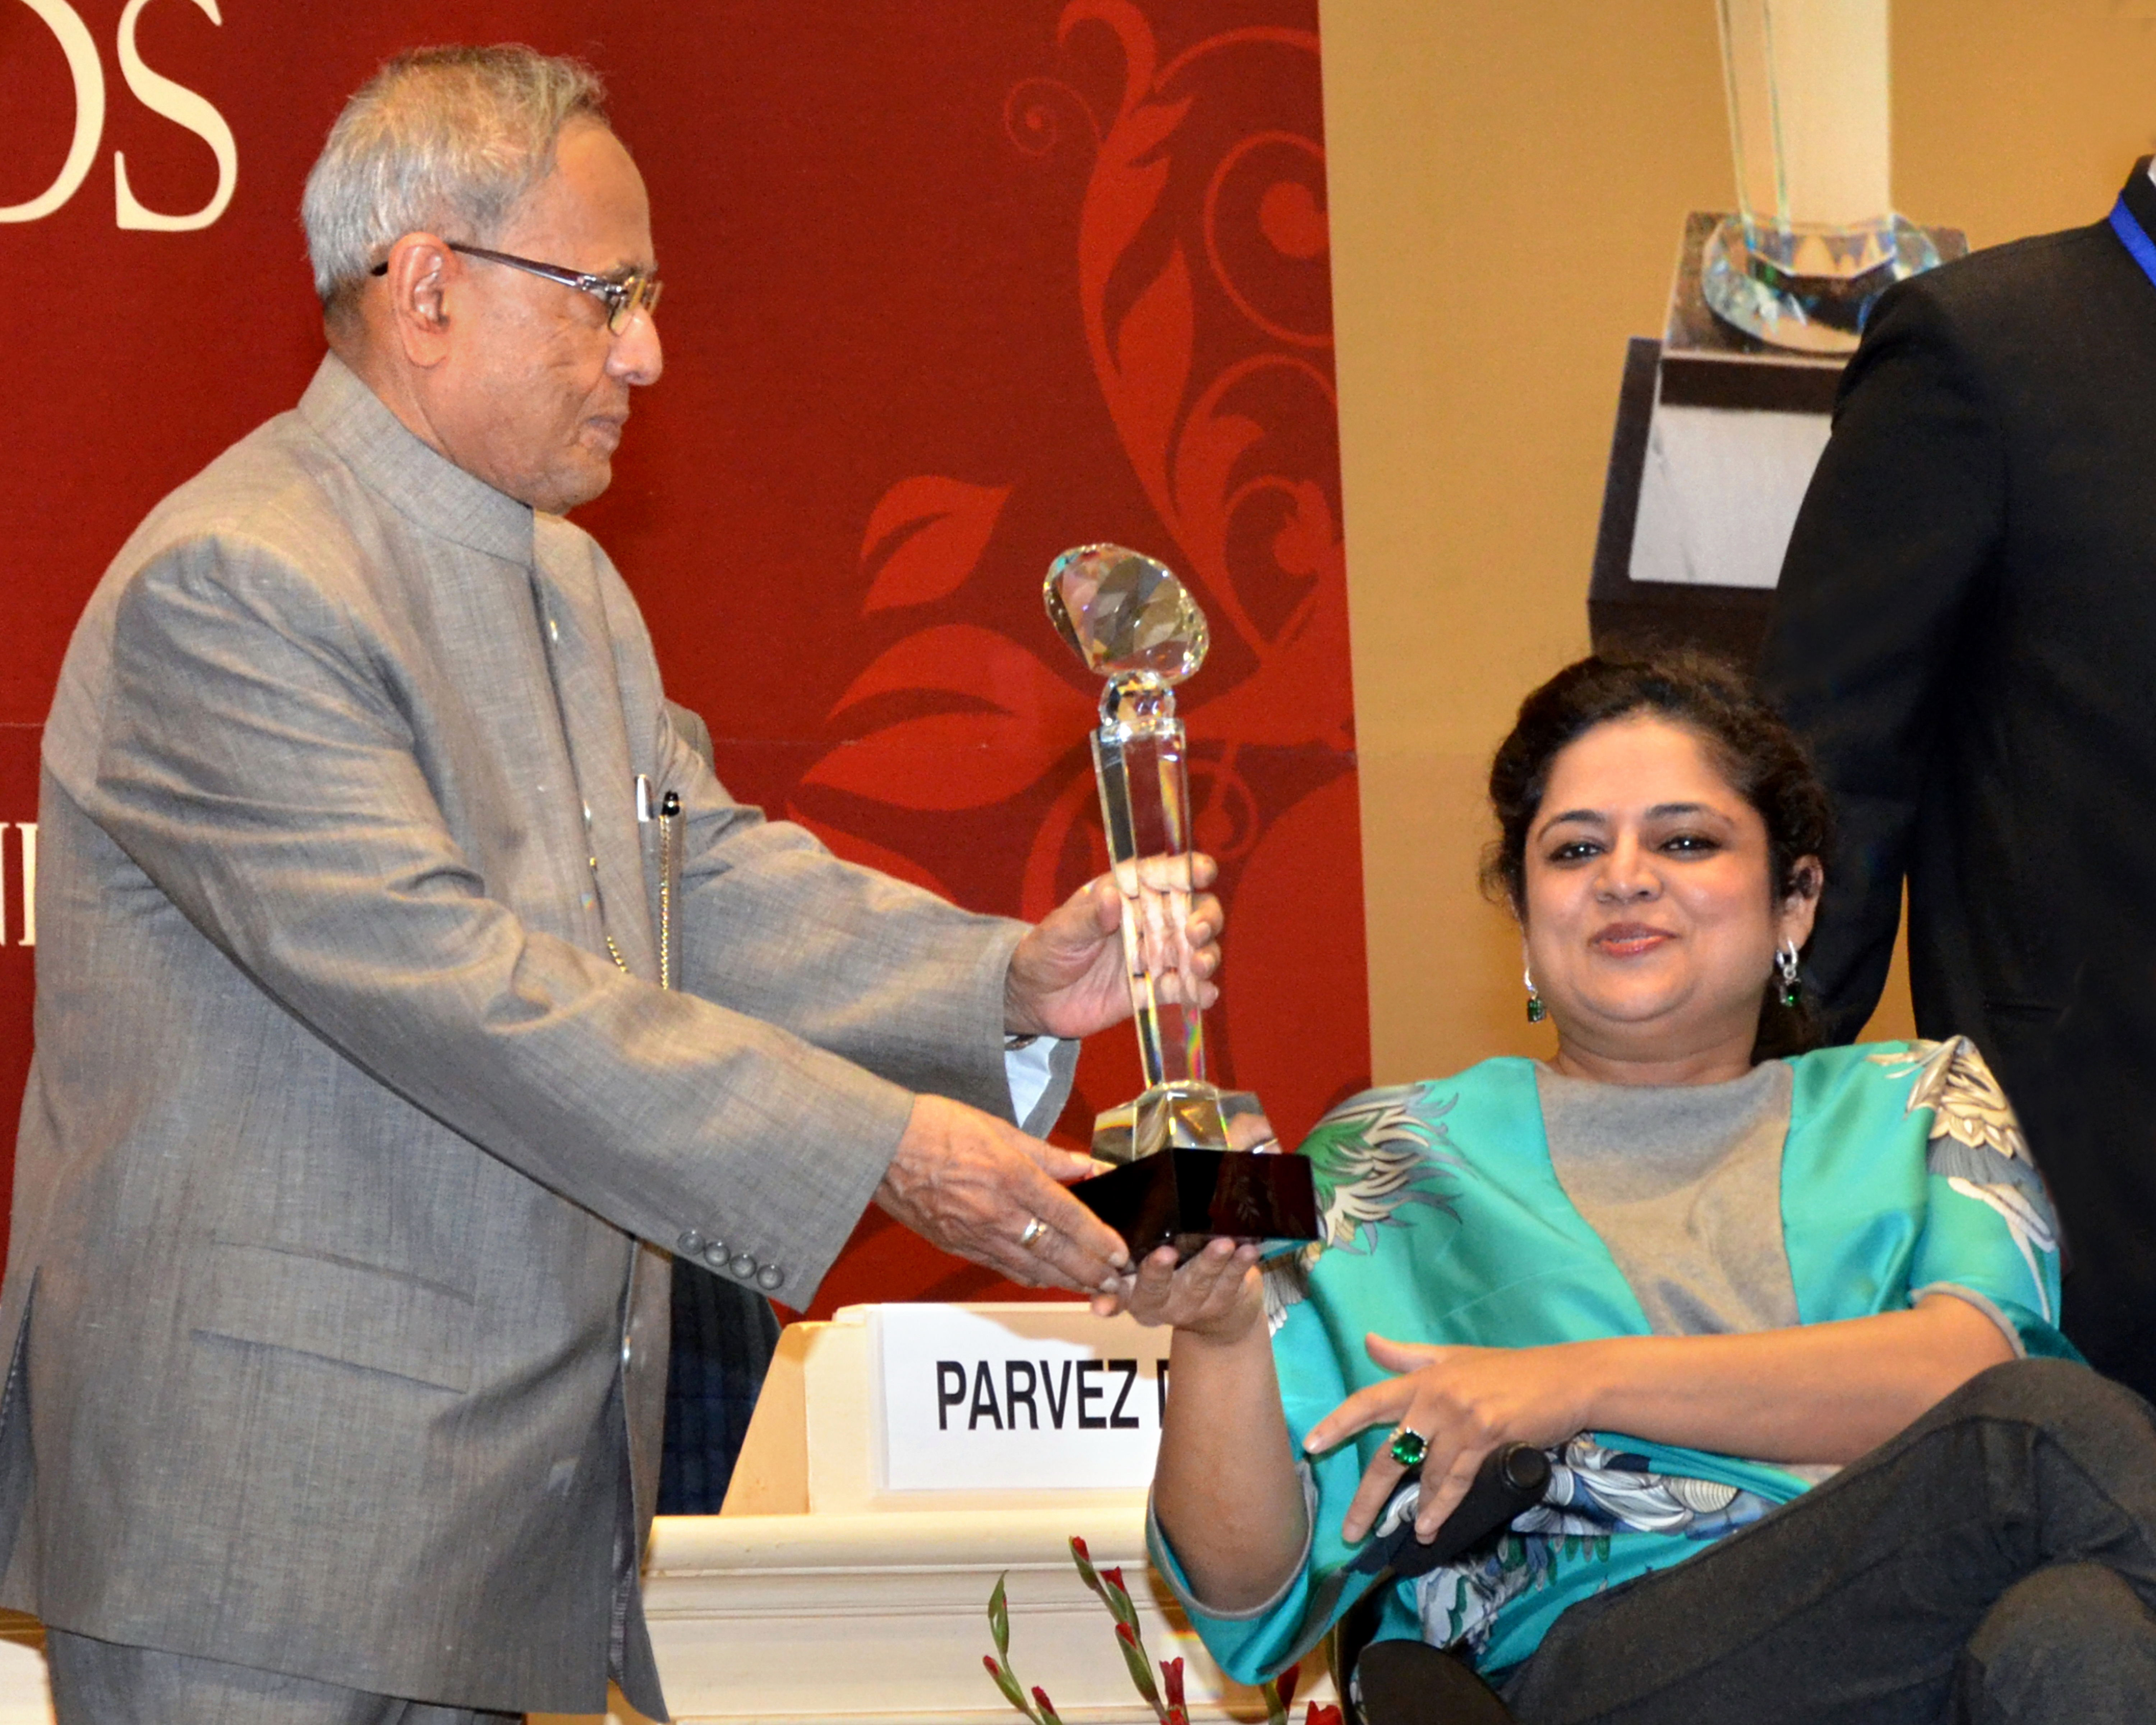 Image- President of India giving away the award to Ms. Jindal, Founder Svayam